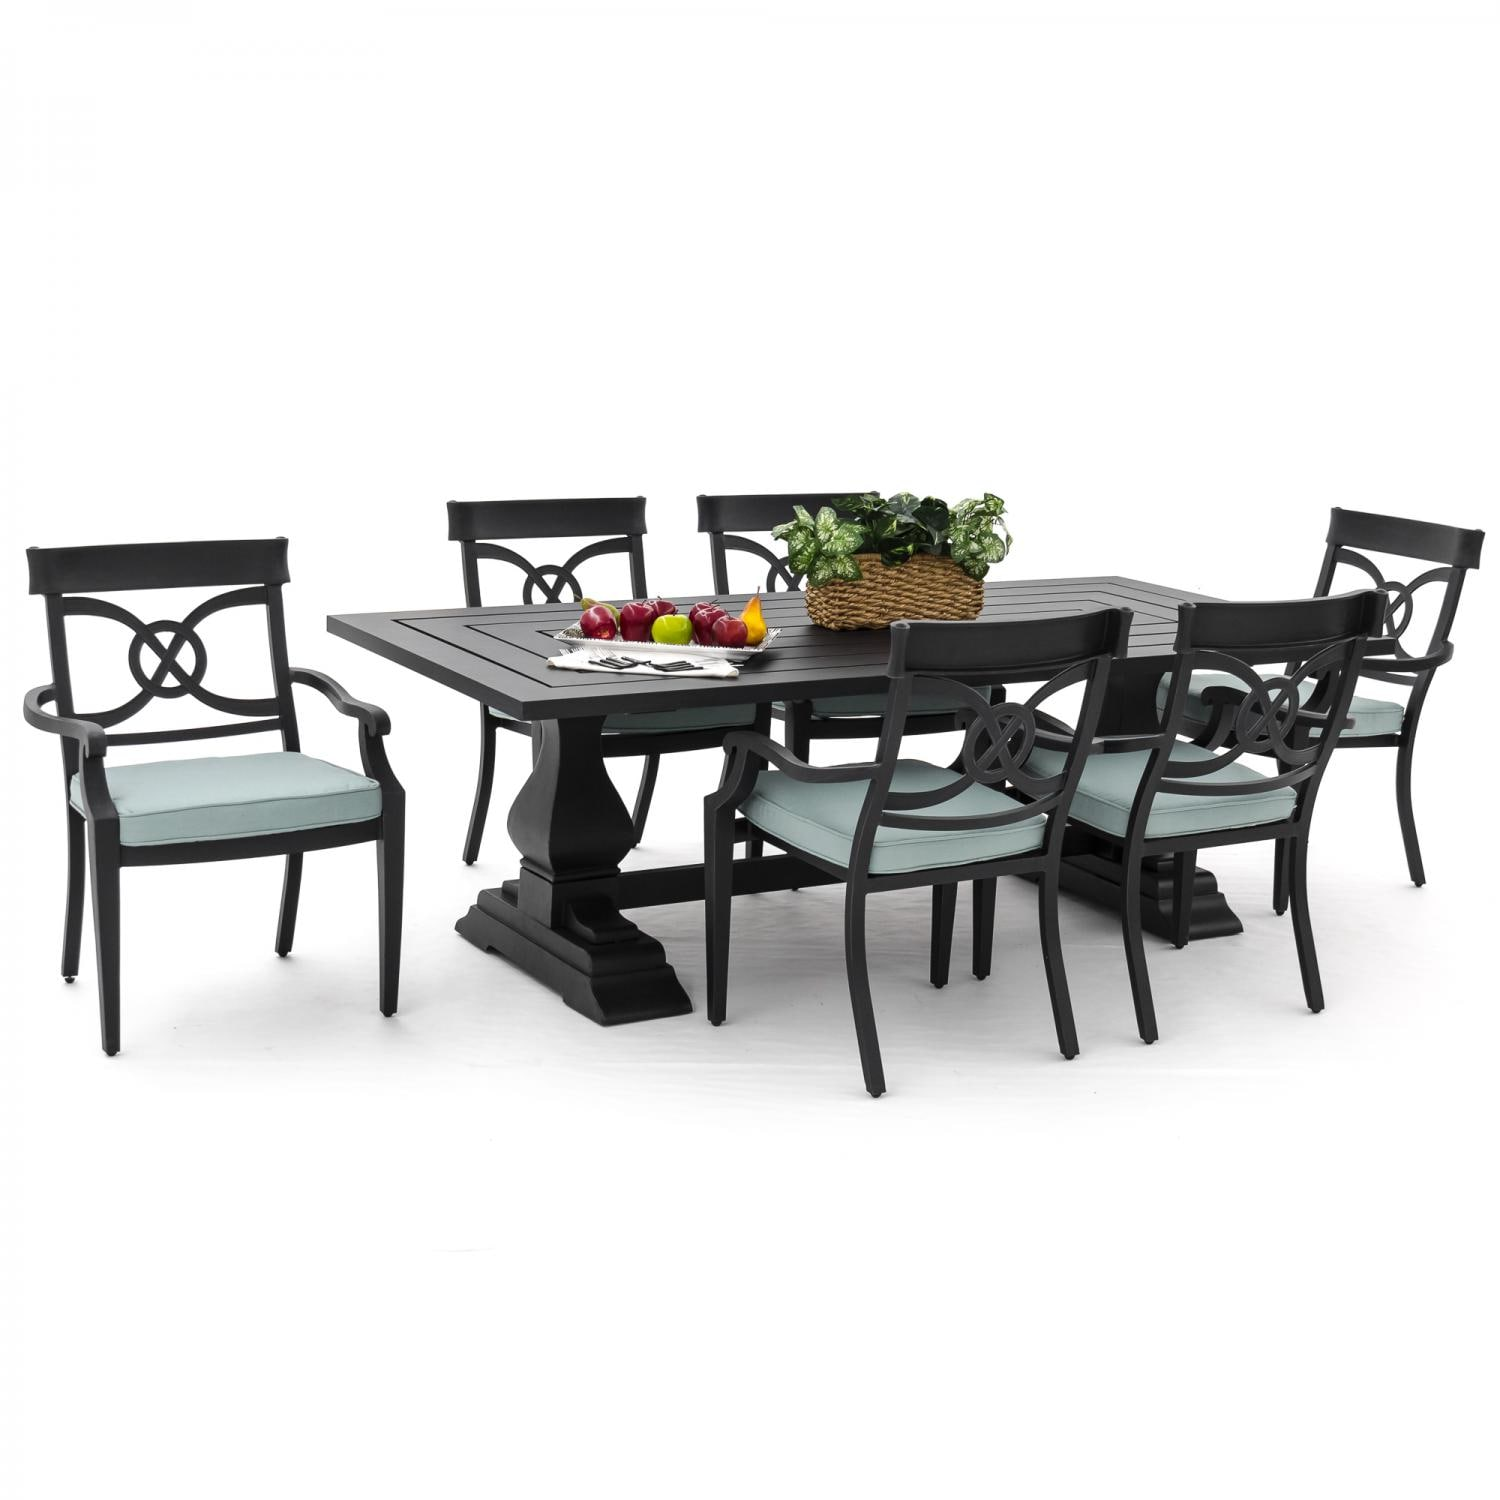 St charles 7 piece cast aluminum patio dining set with for Canvas dining